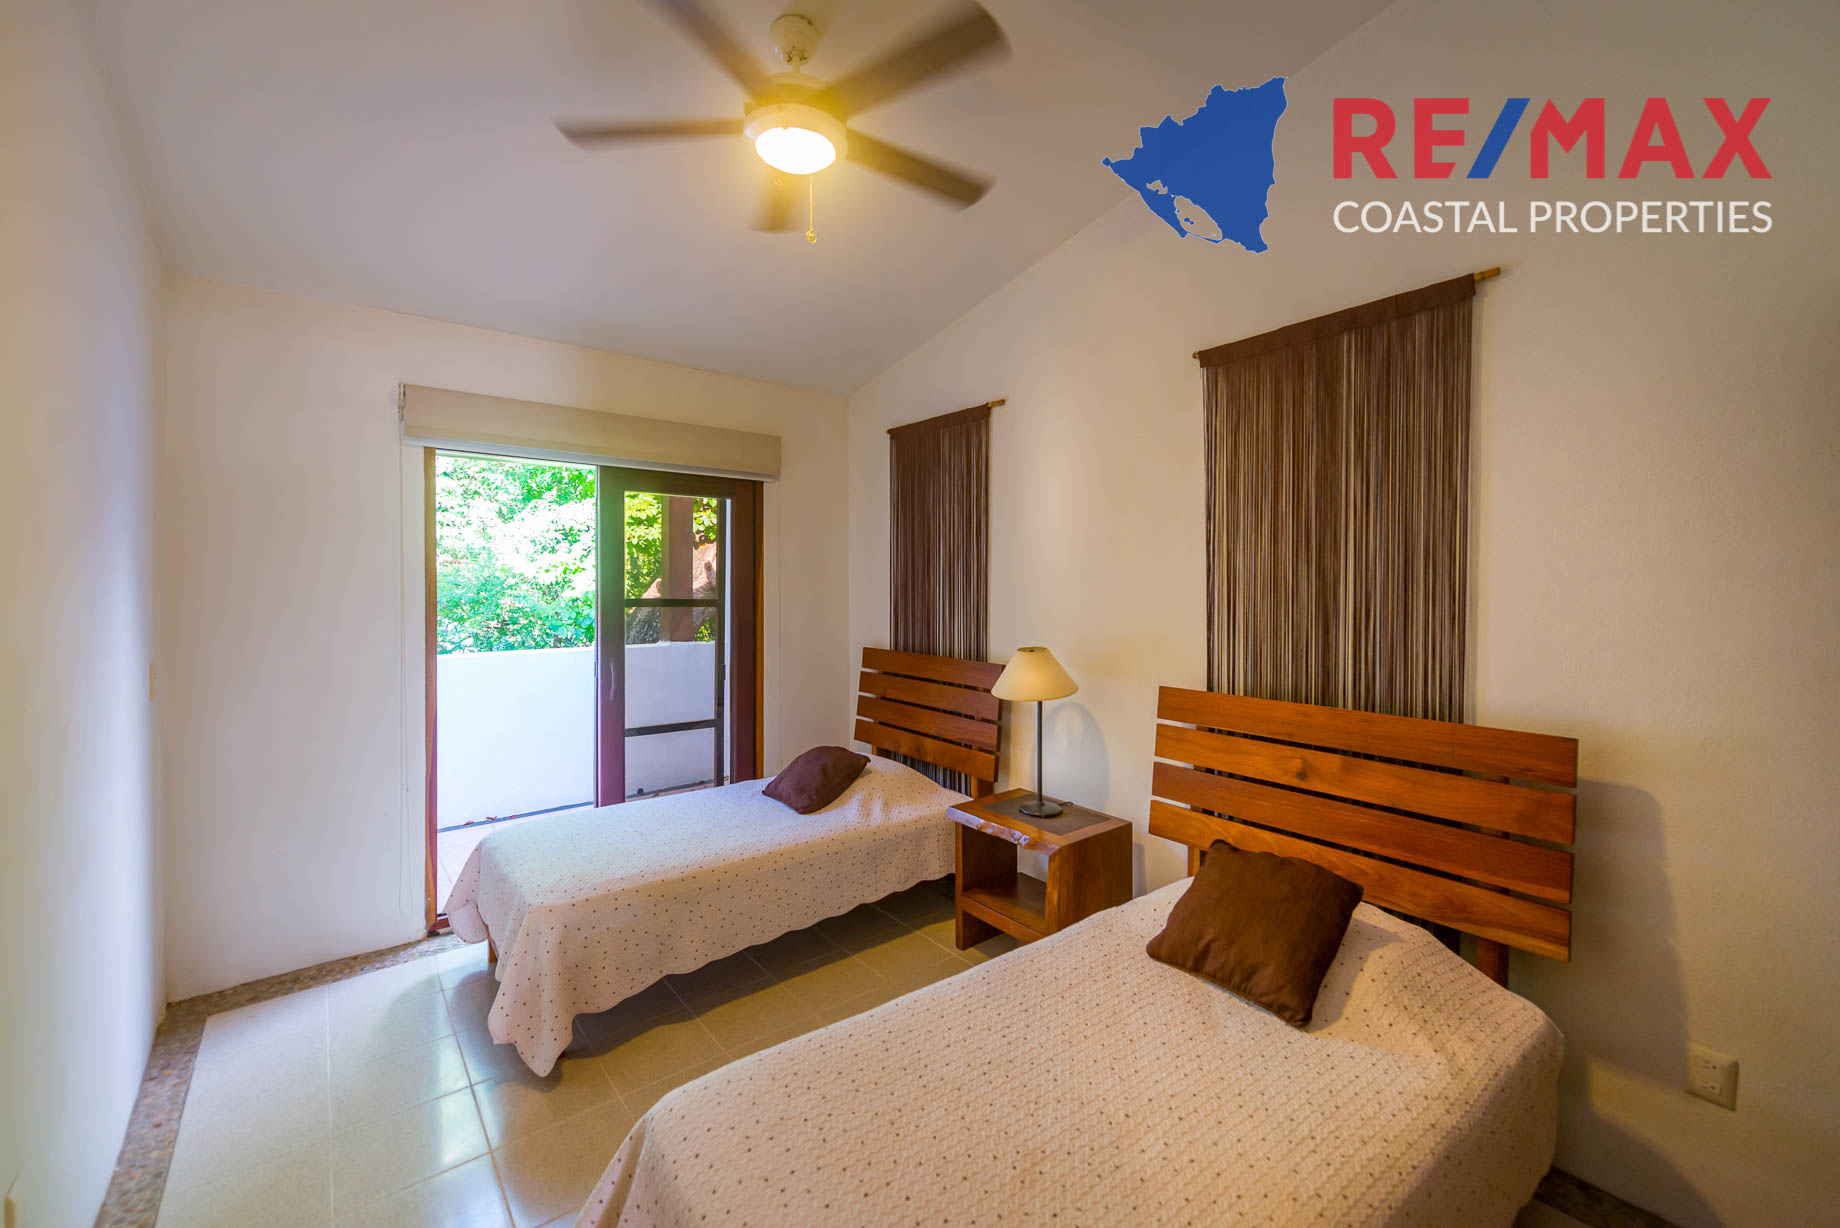 https://property-nicaragua.com/pedrodev/wp-content/uploads/2012/06/Playa-Coco-Townhome-2-REMAX-Coastal-Properties-29.jpg